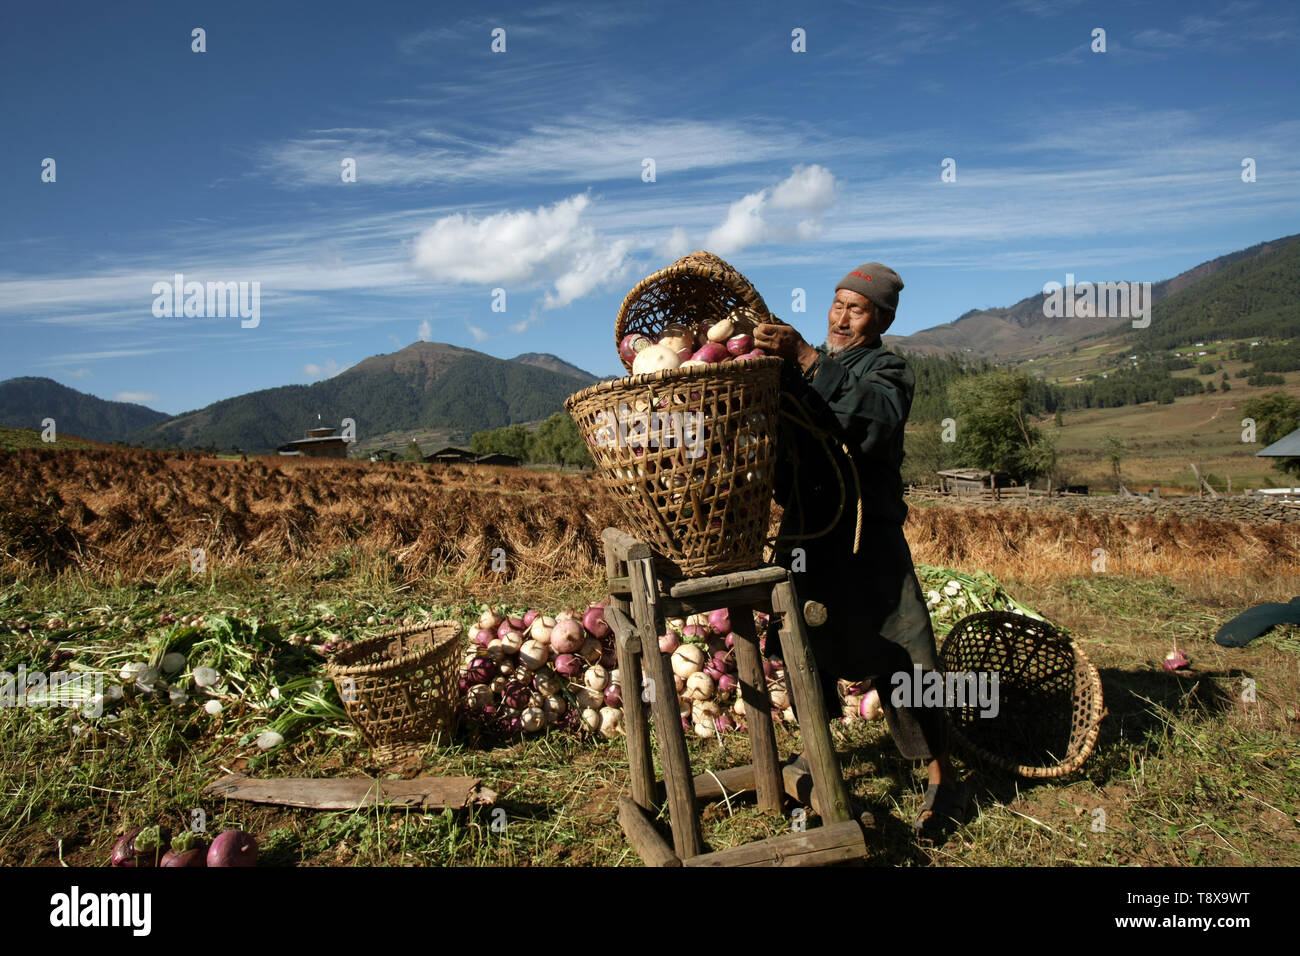 (190515) -- BEIJING, May 15,2019 (Xinhua) -- Photo taken by Sangay Tenzin shows a farmer pouring radishes into a basket in Bhutan. This photo is displayed in a photographic exhibition themed 'Diversity of Asian Civilizations in Youth Eyes'. Sangay Tenzin, a Bhutanese student of Beijing Language and Culture University, is one of the photographers whose work was accepted by an exhibition themed 'Diversity of Asian Civilizations in Youth Eyes', on the sidelines of the Conference on Dialogue of Asian Civilizations (CDAC). In his photo, a farmer pours radishes into a basket with traditional Bhutane - Stock Image